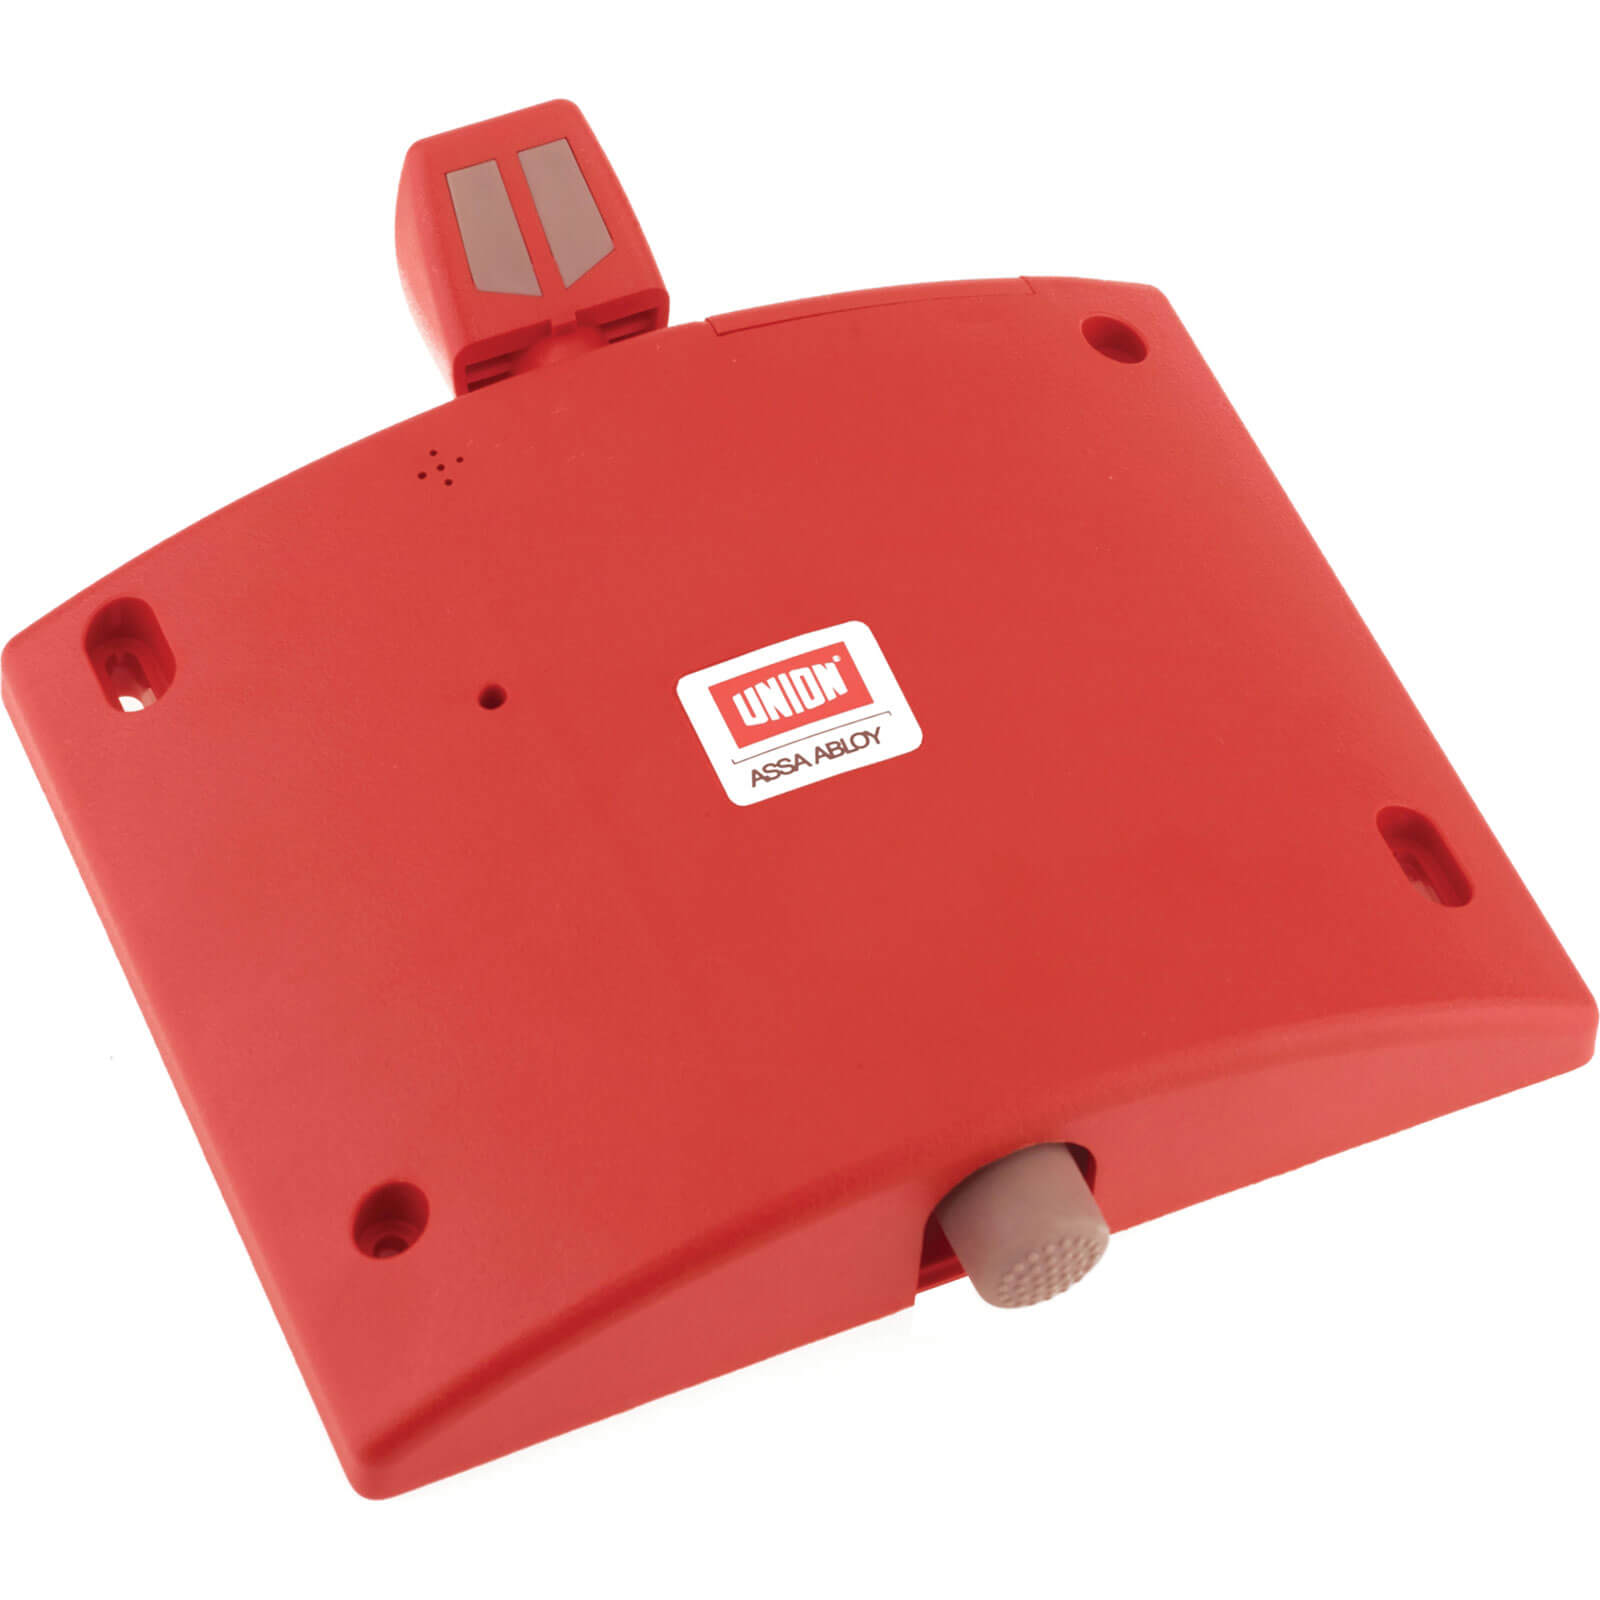 Image of Union Doorsense Acoustic Fire Door Release Device Red